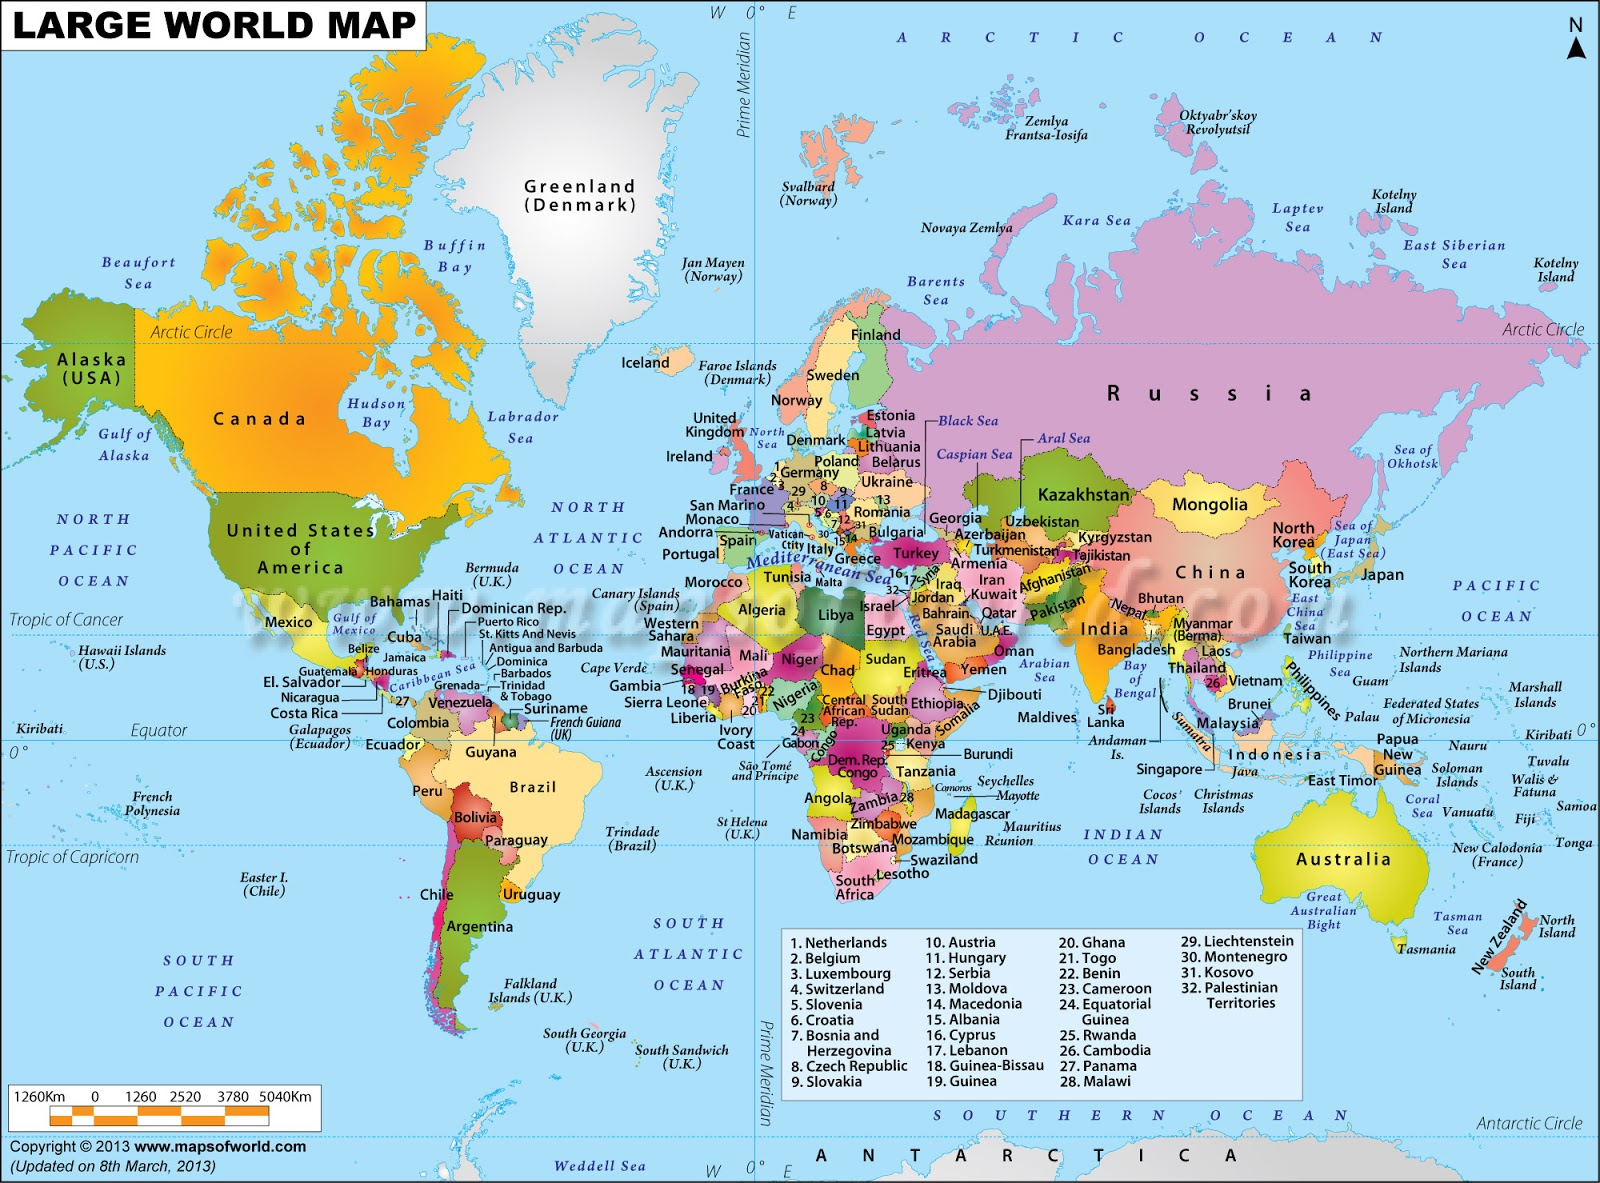 World Atlas Political Map besides Printable Political World Map Labeled besides World Map With Countries Names likewise World Map Maps Of The World additionally World Map With Countries Names. on political world map with countries